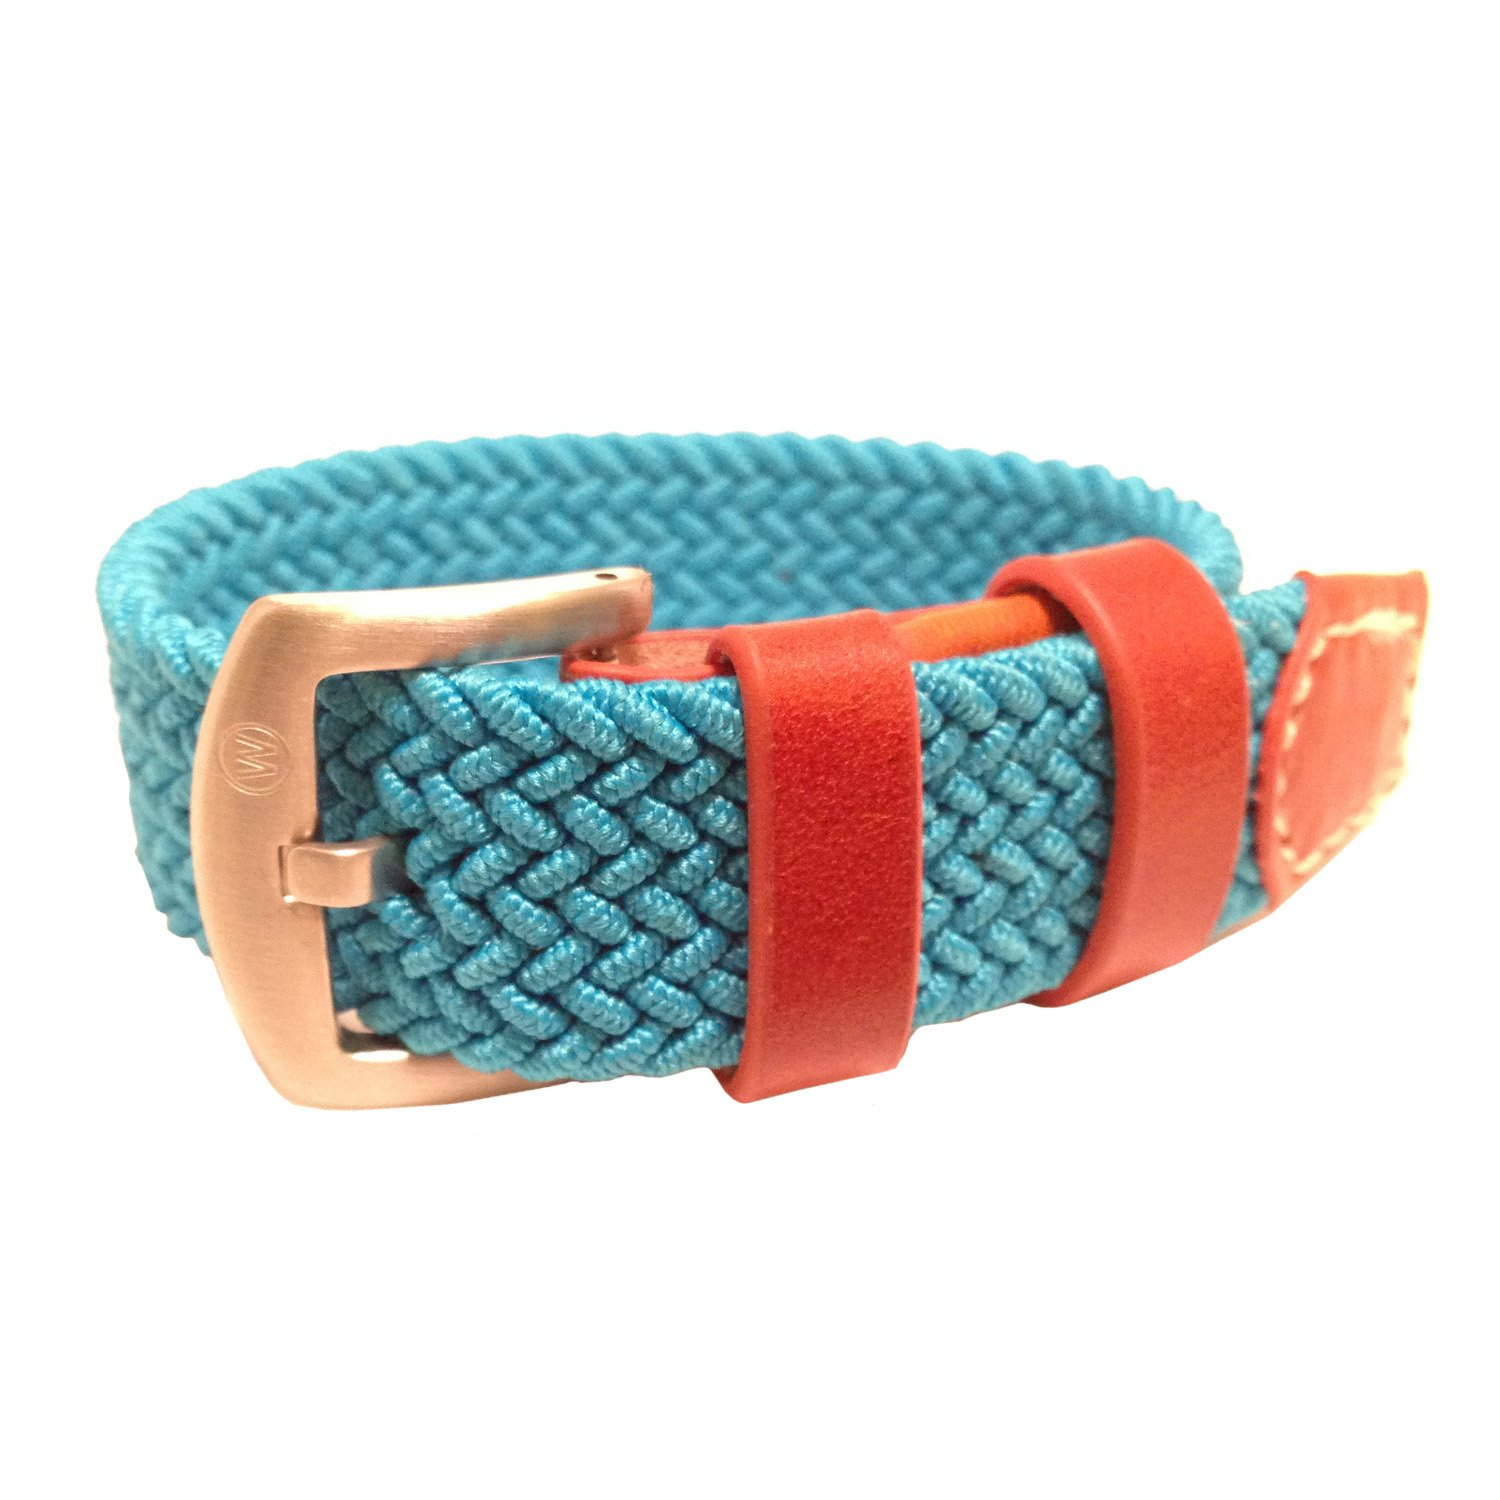 W&S Braided Woven Watch Strap Stretch Watch Band (20mm, Teal) by Wrist & Style (Image #1)